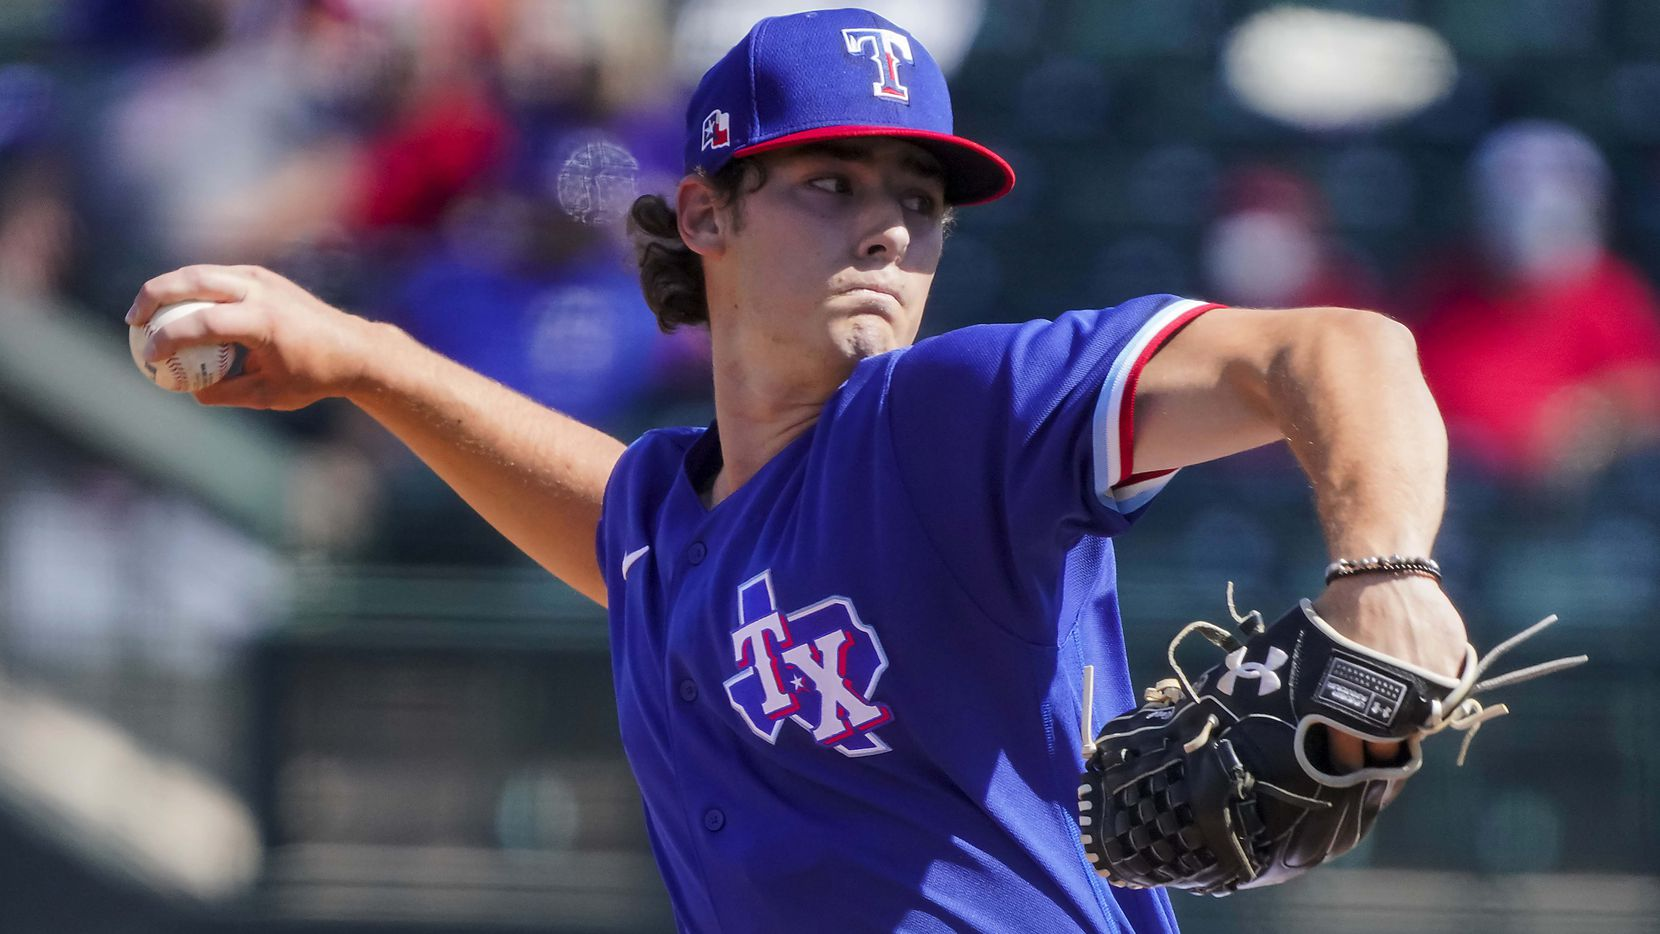 Texas Rangers pitcher Cole Winn delivers during the fifth inning of a spring training game against the Cleveland Indians at Surprise Stadium on Tuesday, March 9, 2021, in Surprise, Ariz. (Smiley N. Pool/The Dallas Morning News)